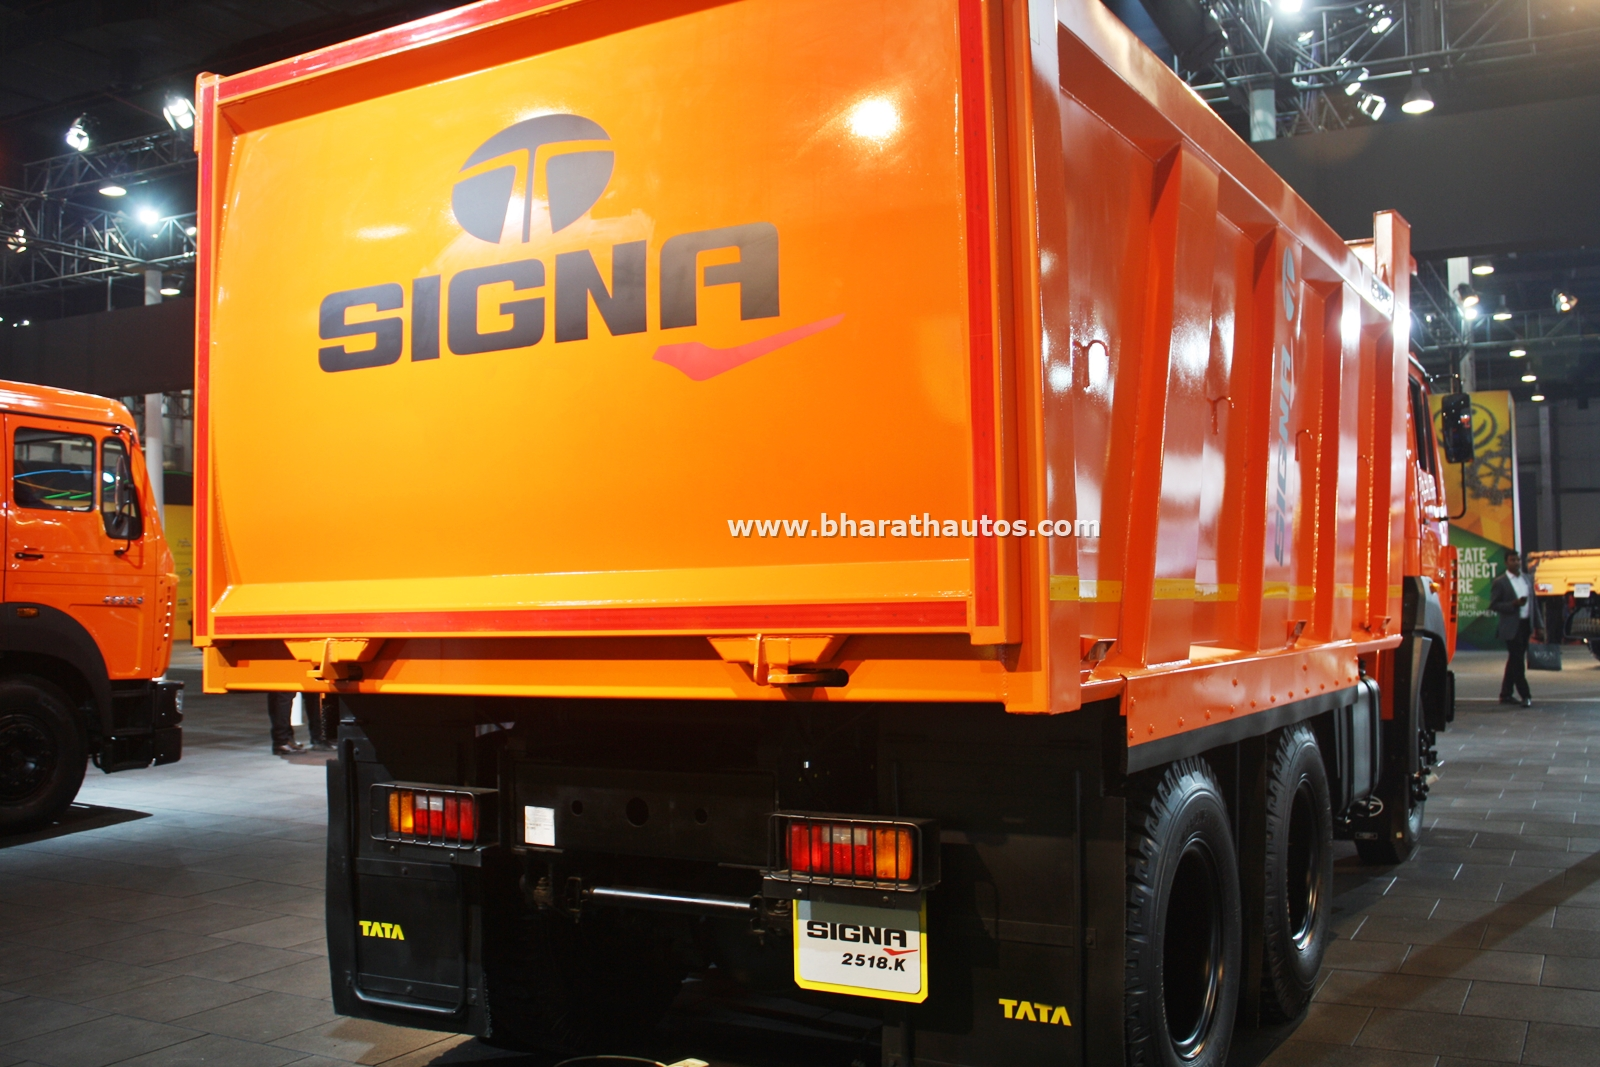 tata-signa-2518 .k-tipper-india-pictures-photos-images-snaps-2016-auto-expo-rear